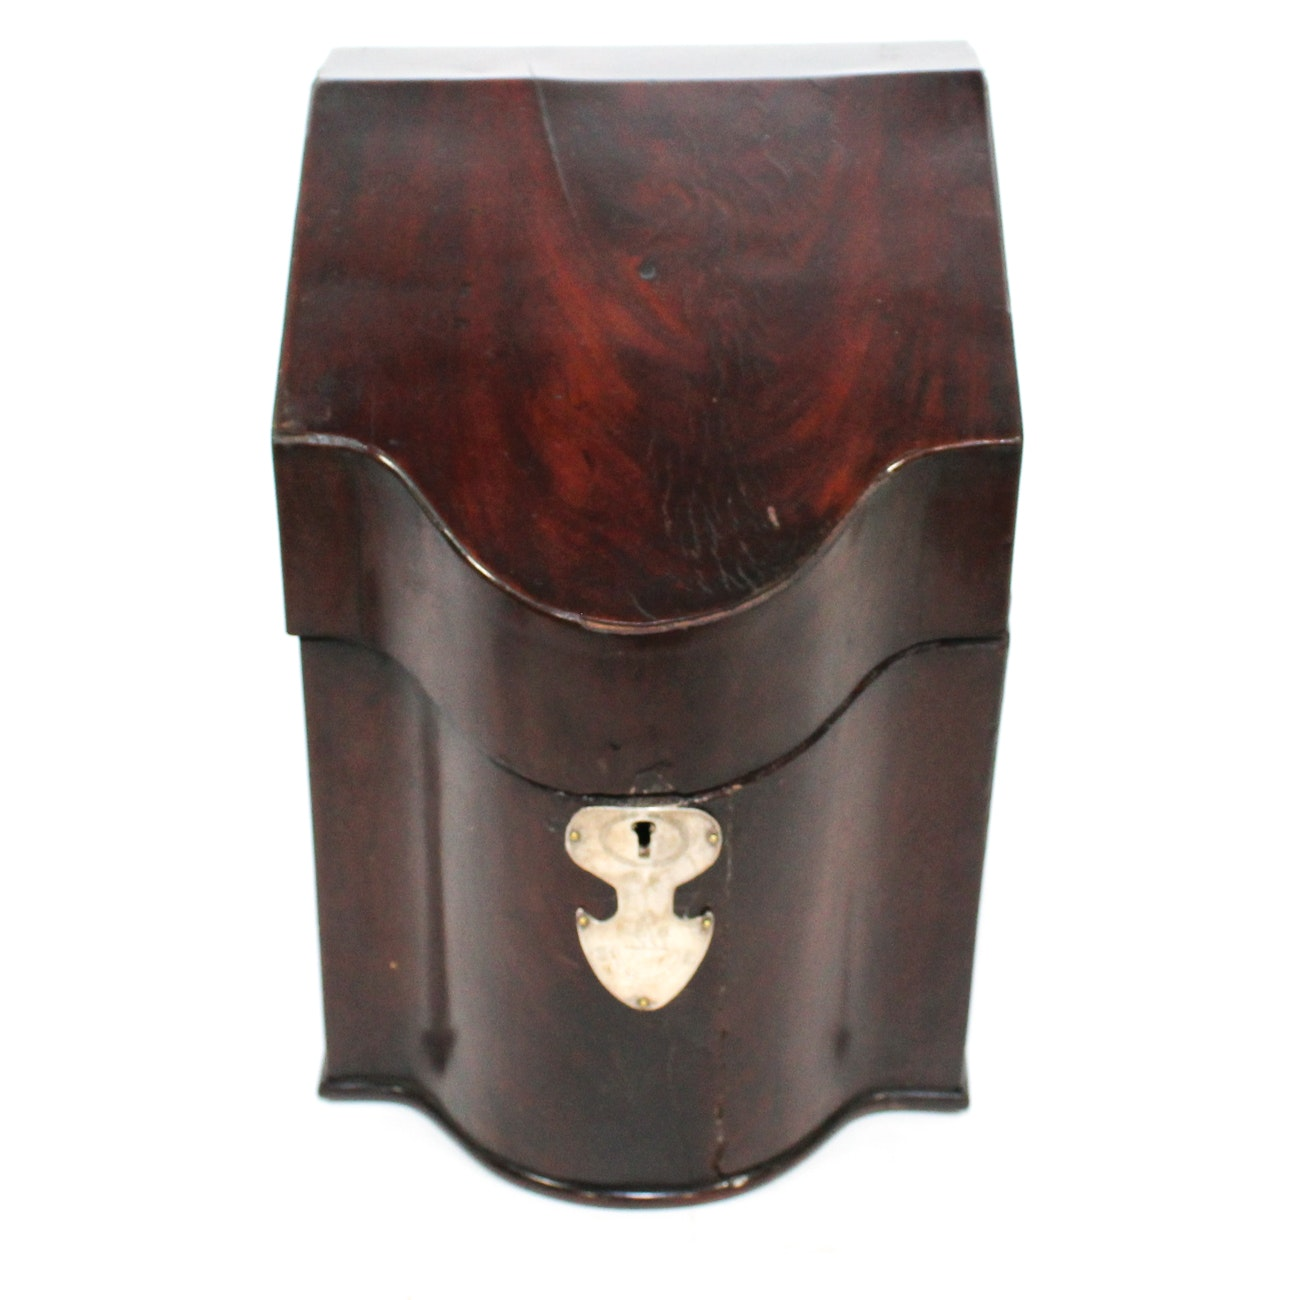 George III Mahogany Knife Box With Armorial Escutcheon